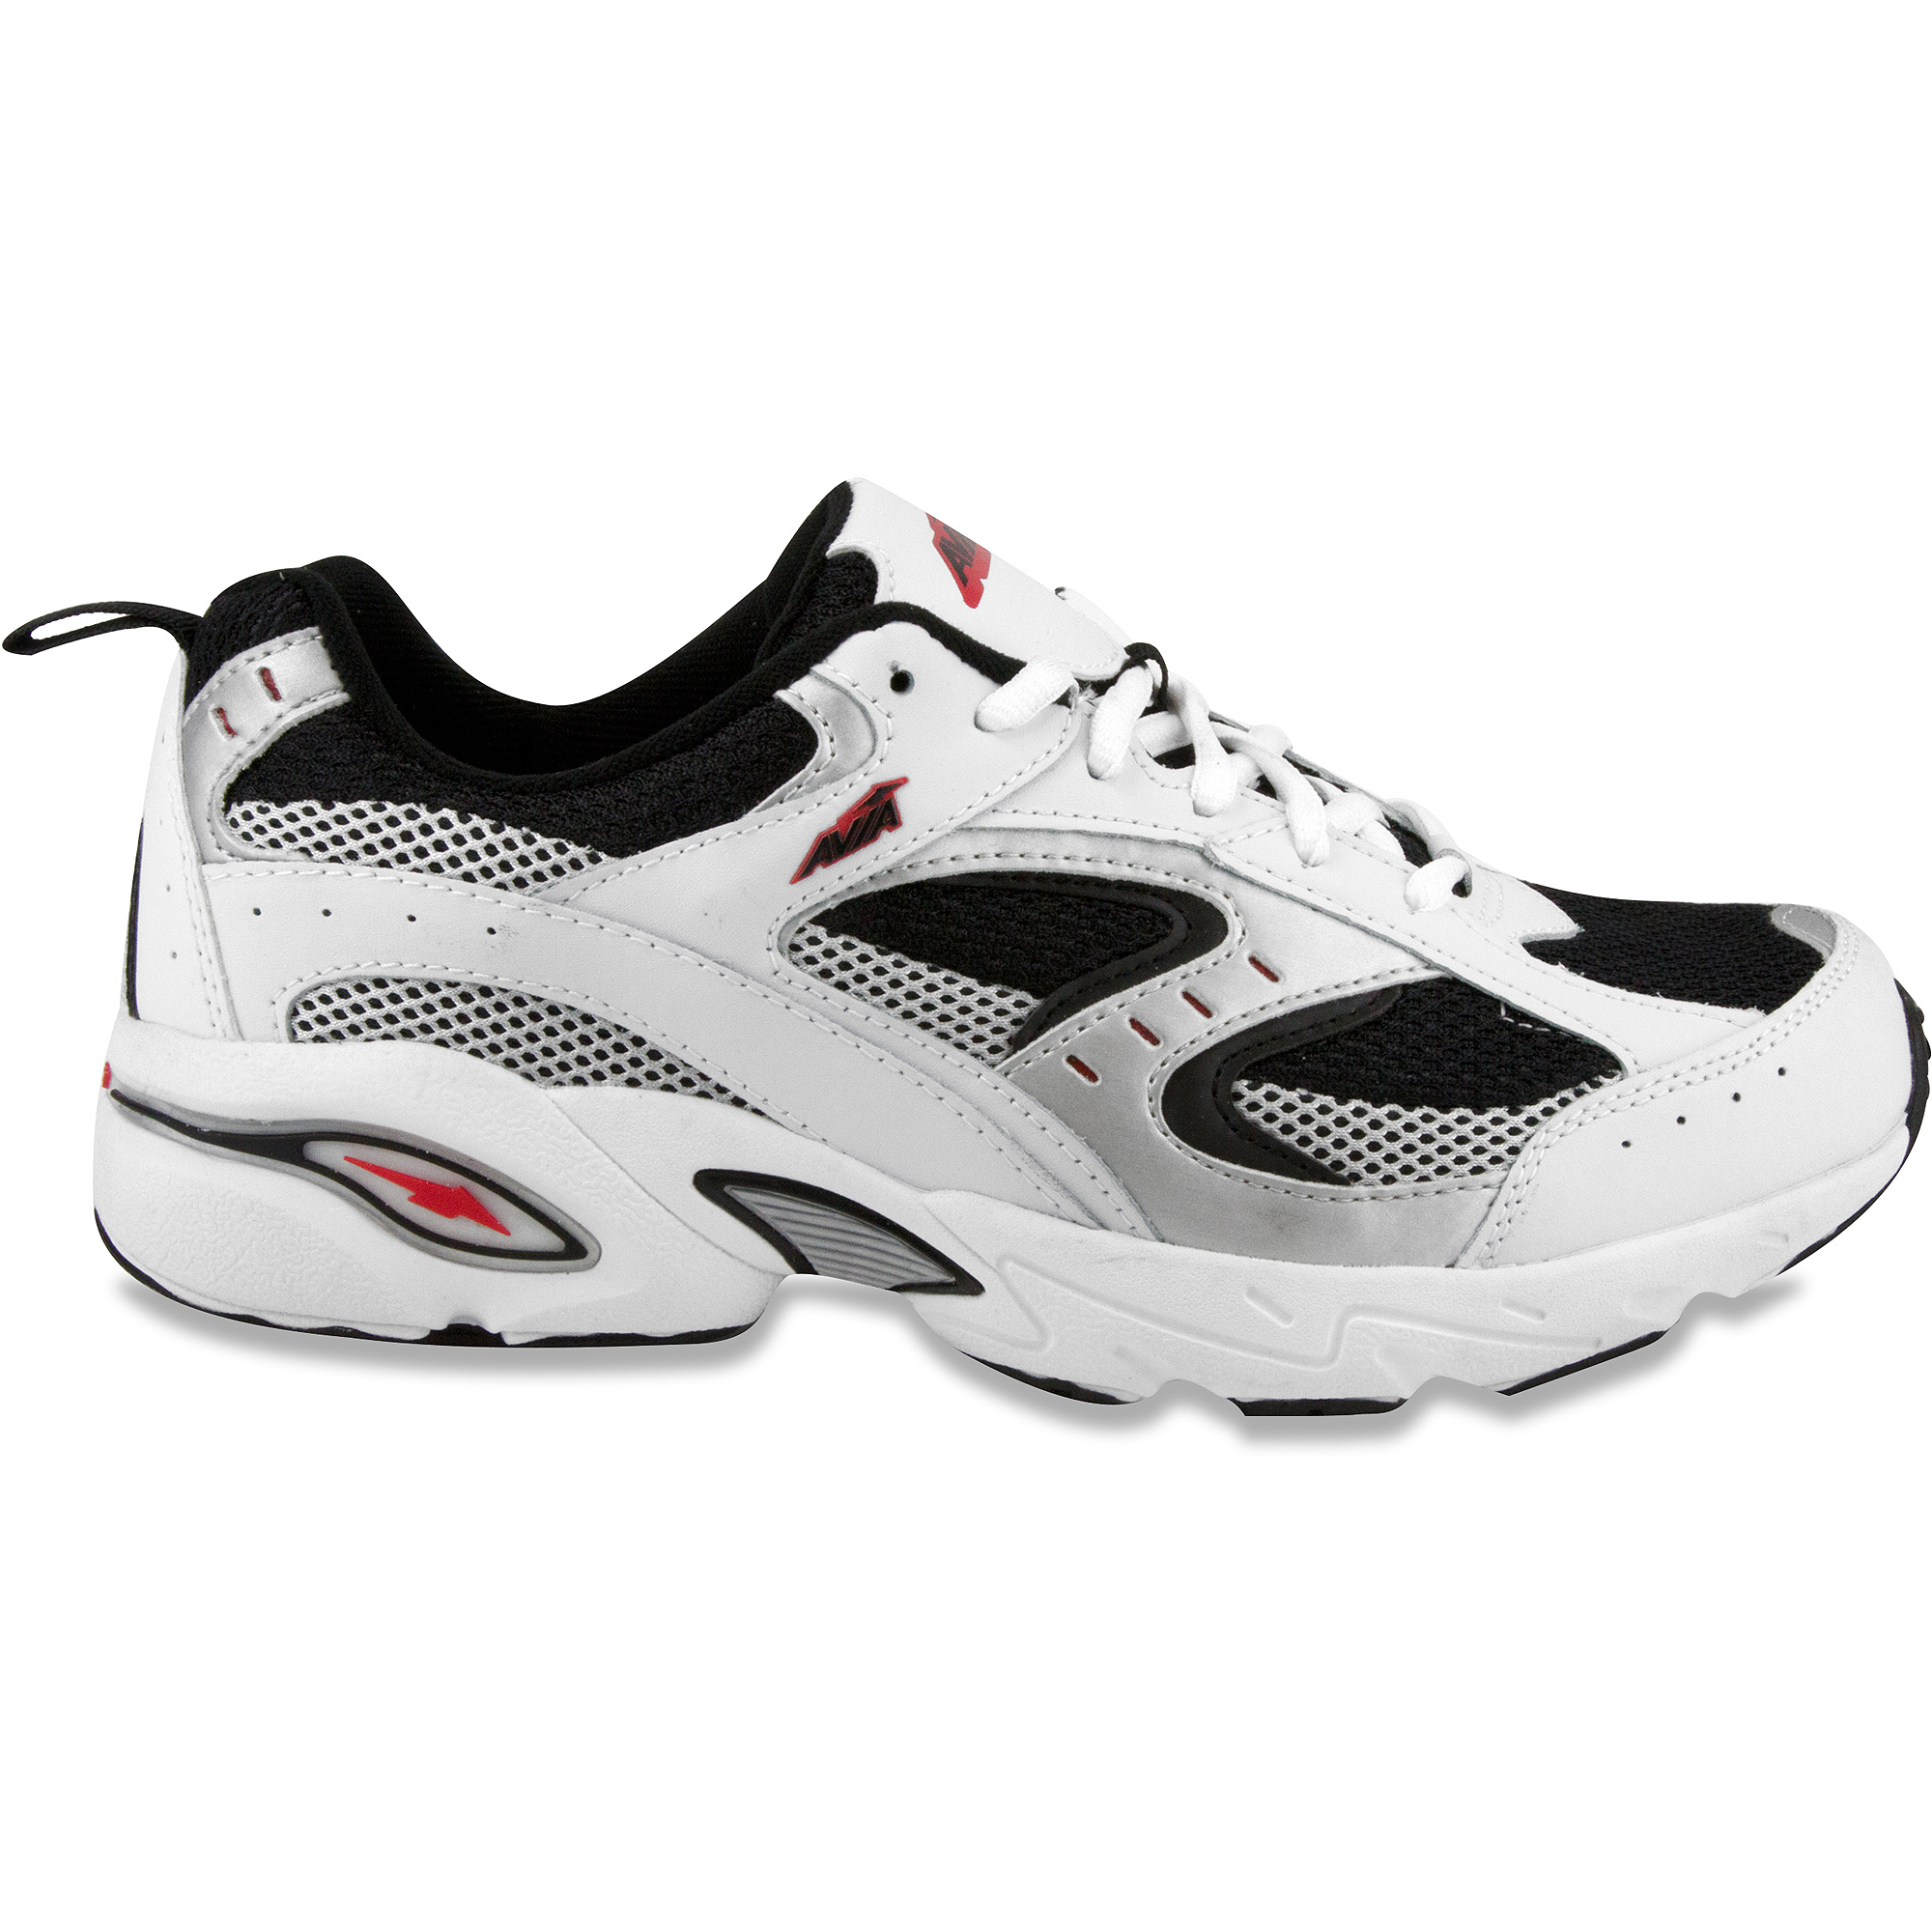 Avia Men's Wyatt Athletic Shoe